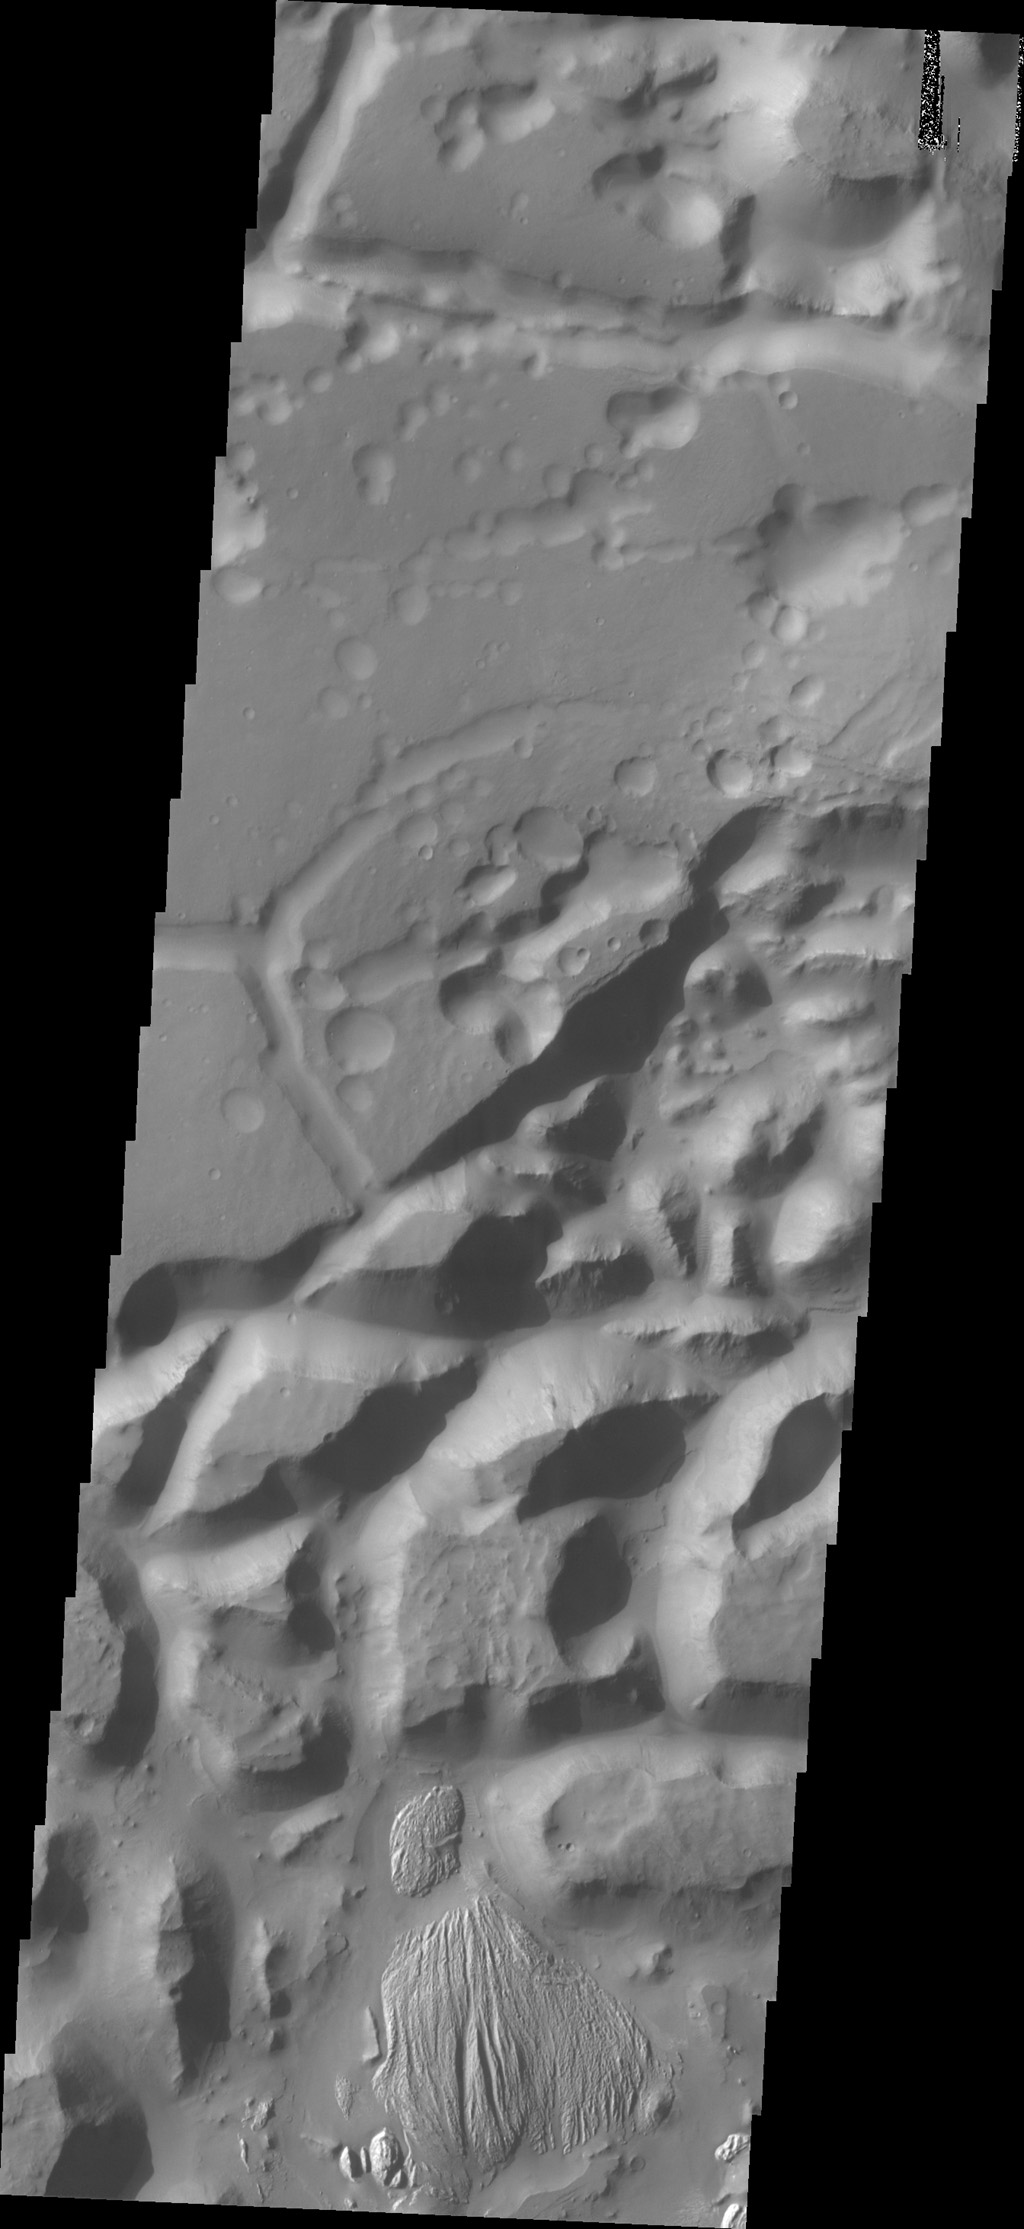 The isolated mesas in this image from NASA's 2001 Mars Odyssey spacecraft are part of Arsinoes Chaos. There is a material that differs from the rest of the chaos visible at the bottom of the image.